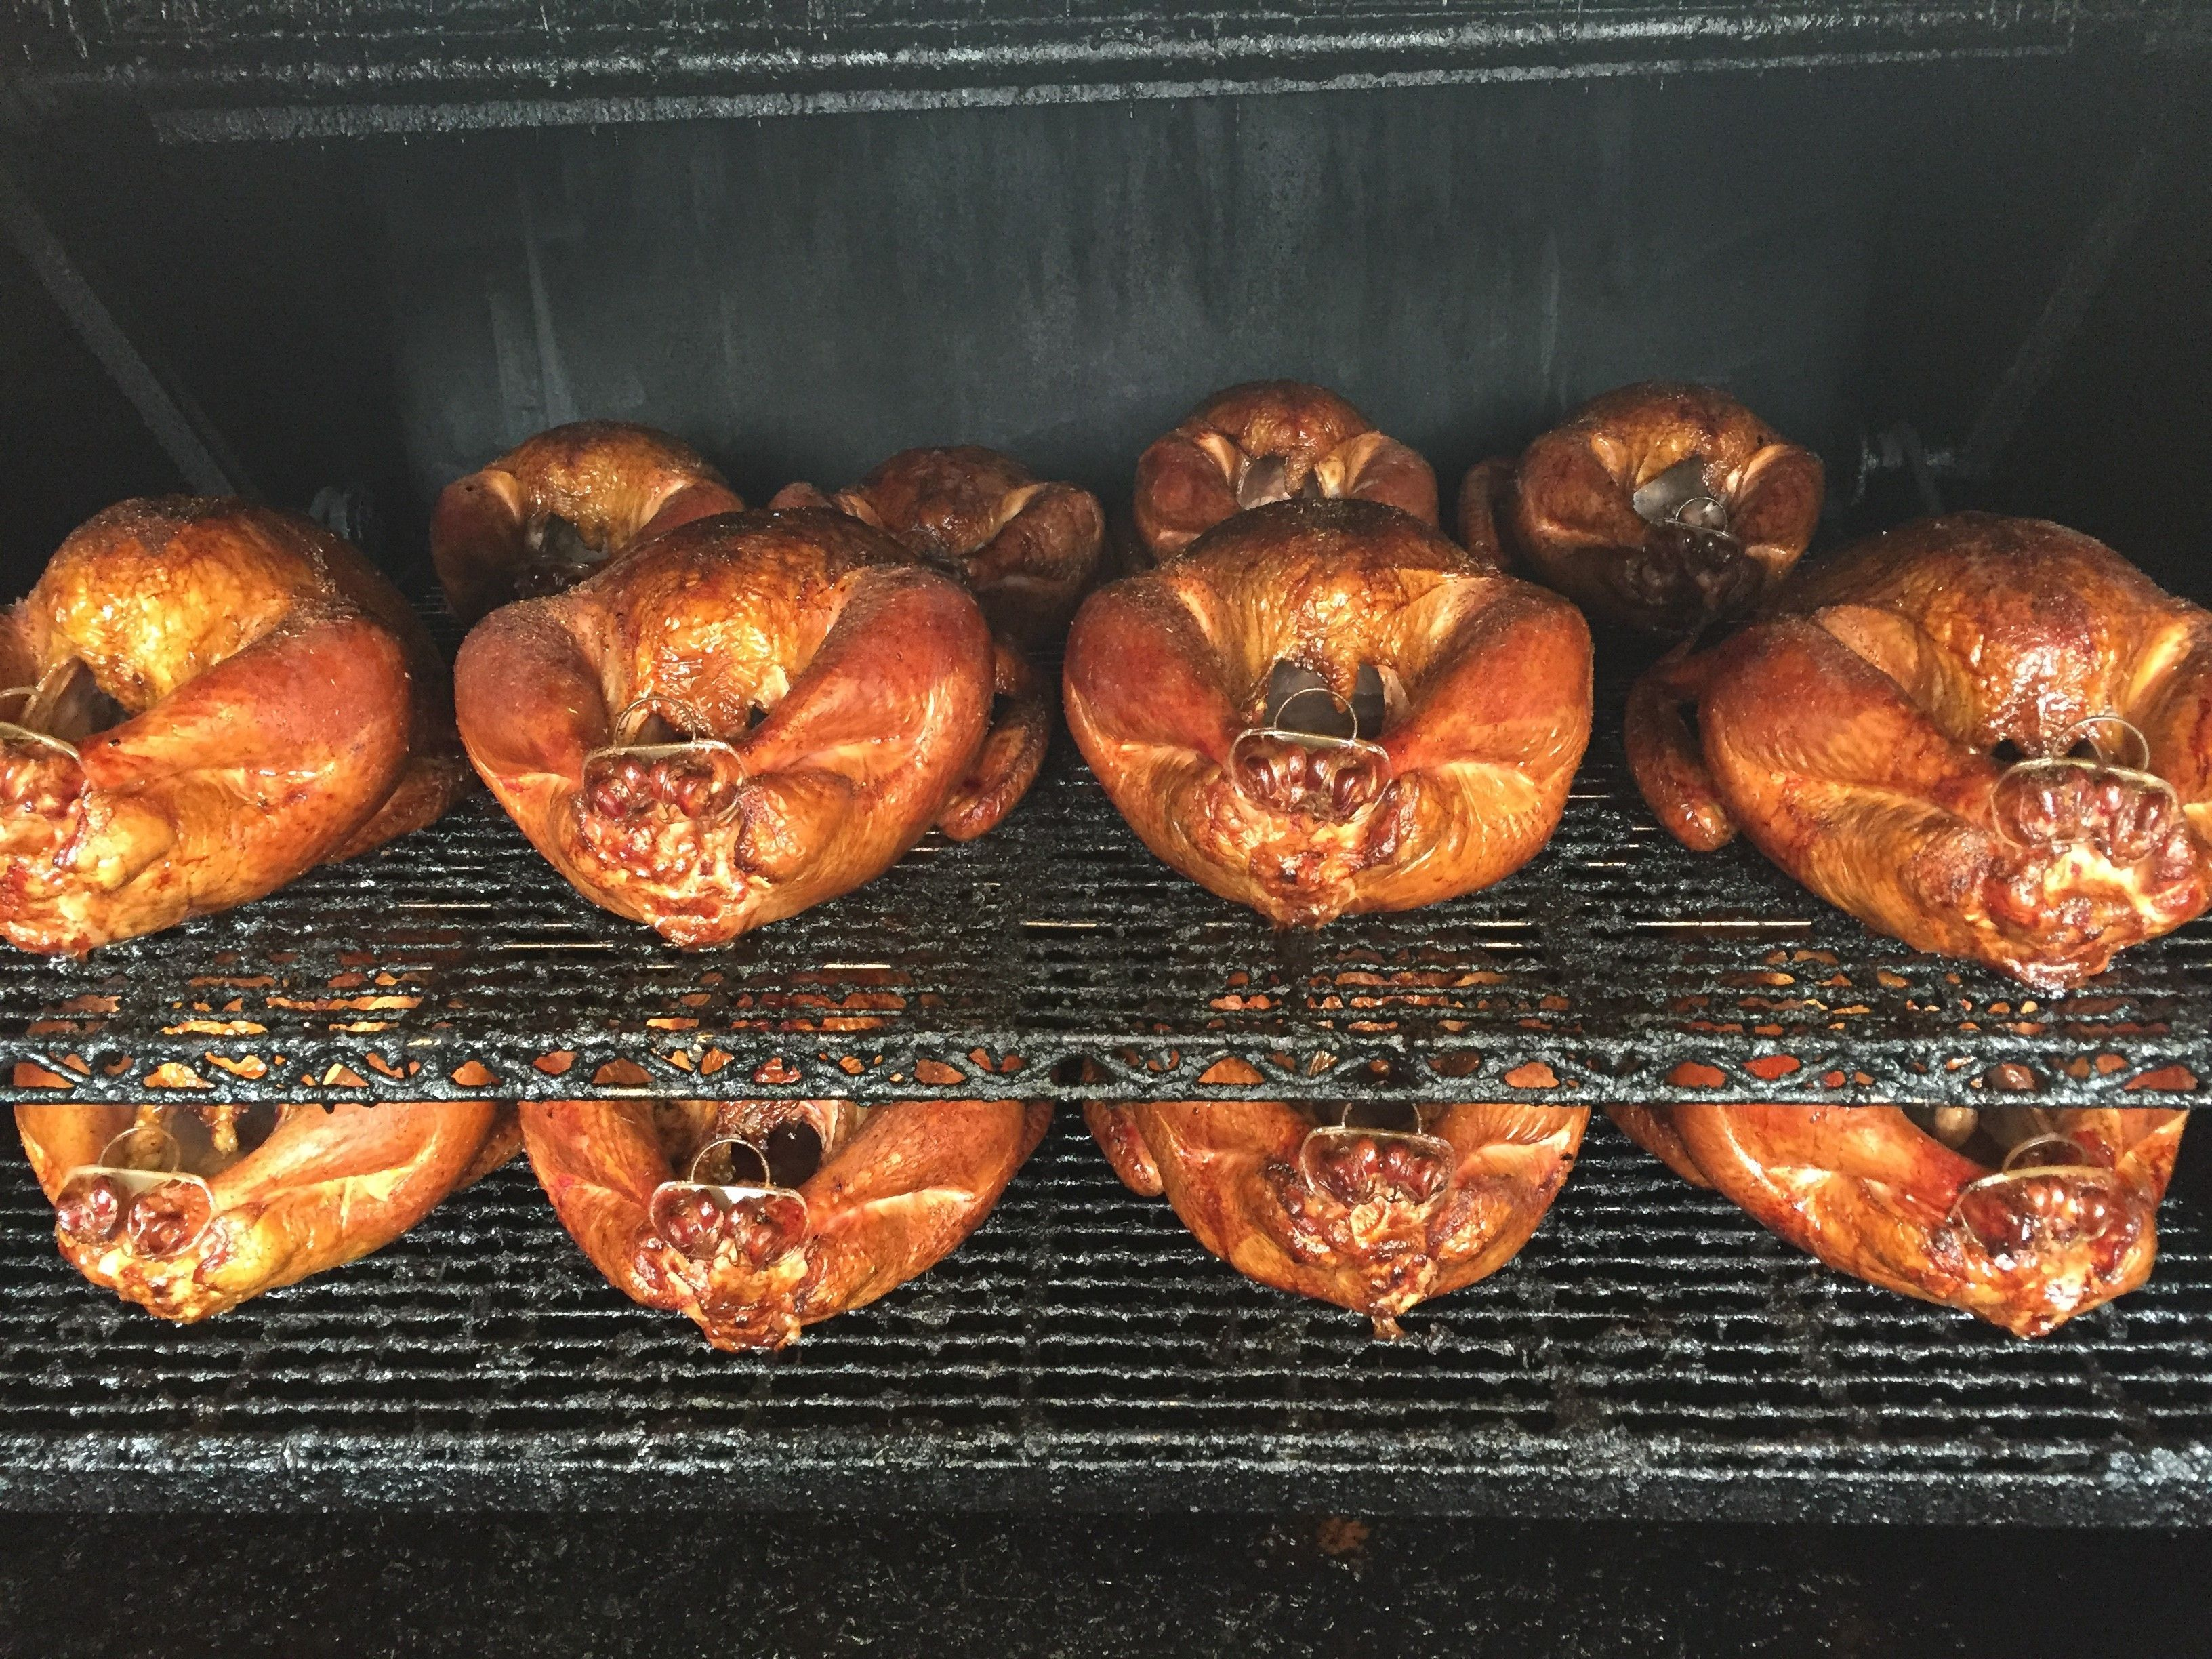 Precooked, whole, smoked turkey for Thanksgiving Dinner